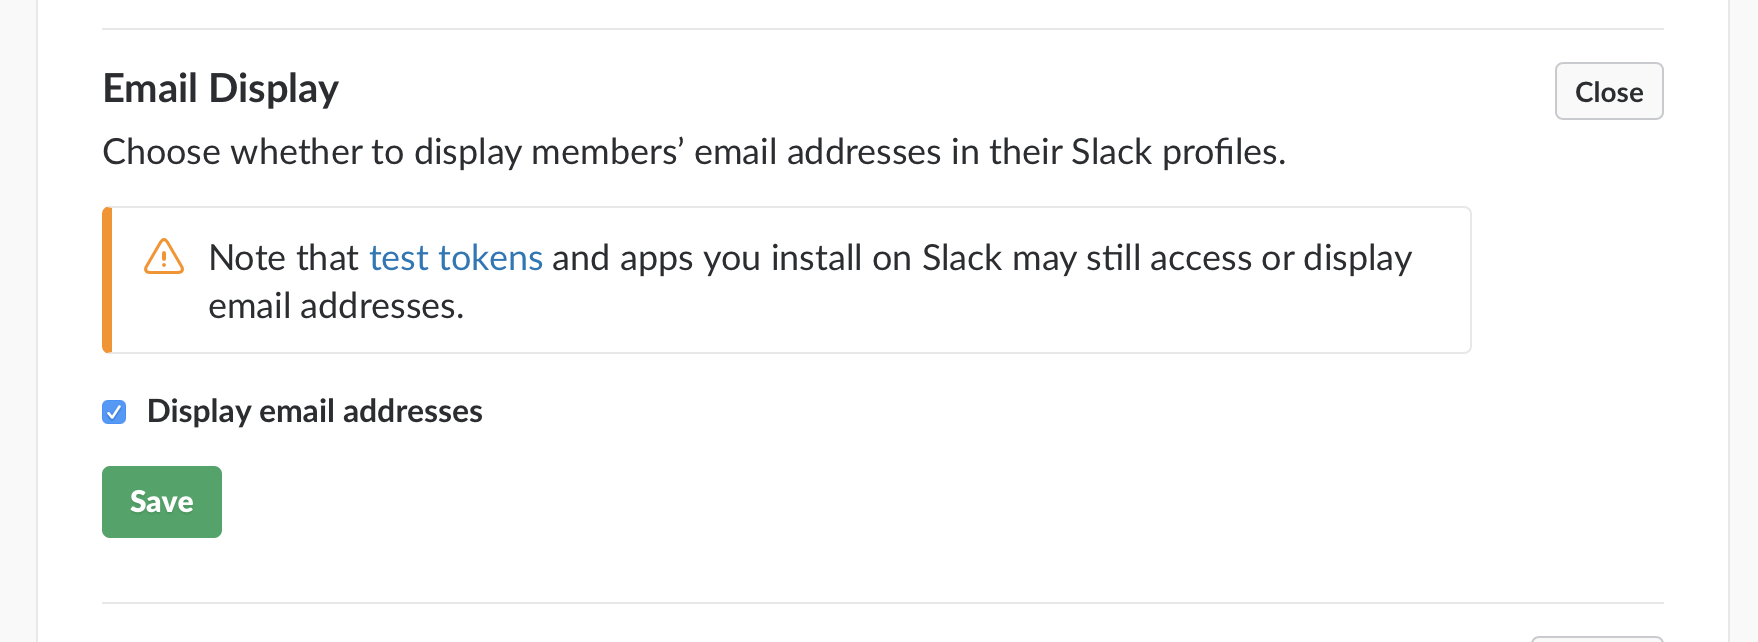 Display emails in Slack.